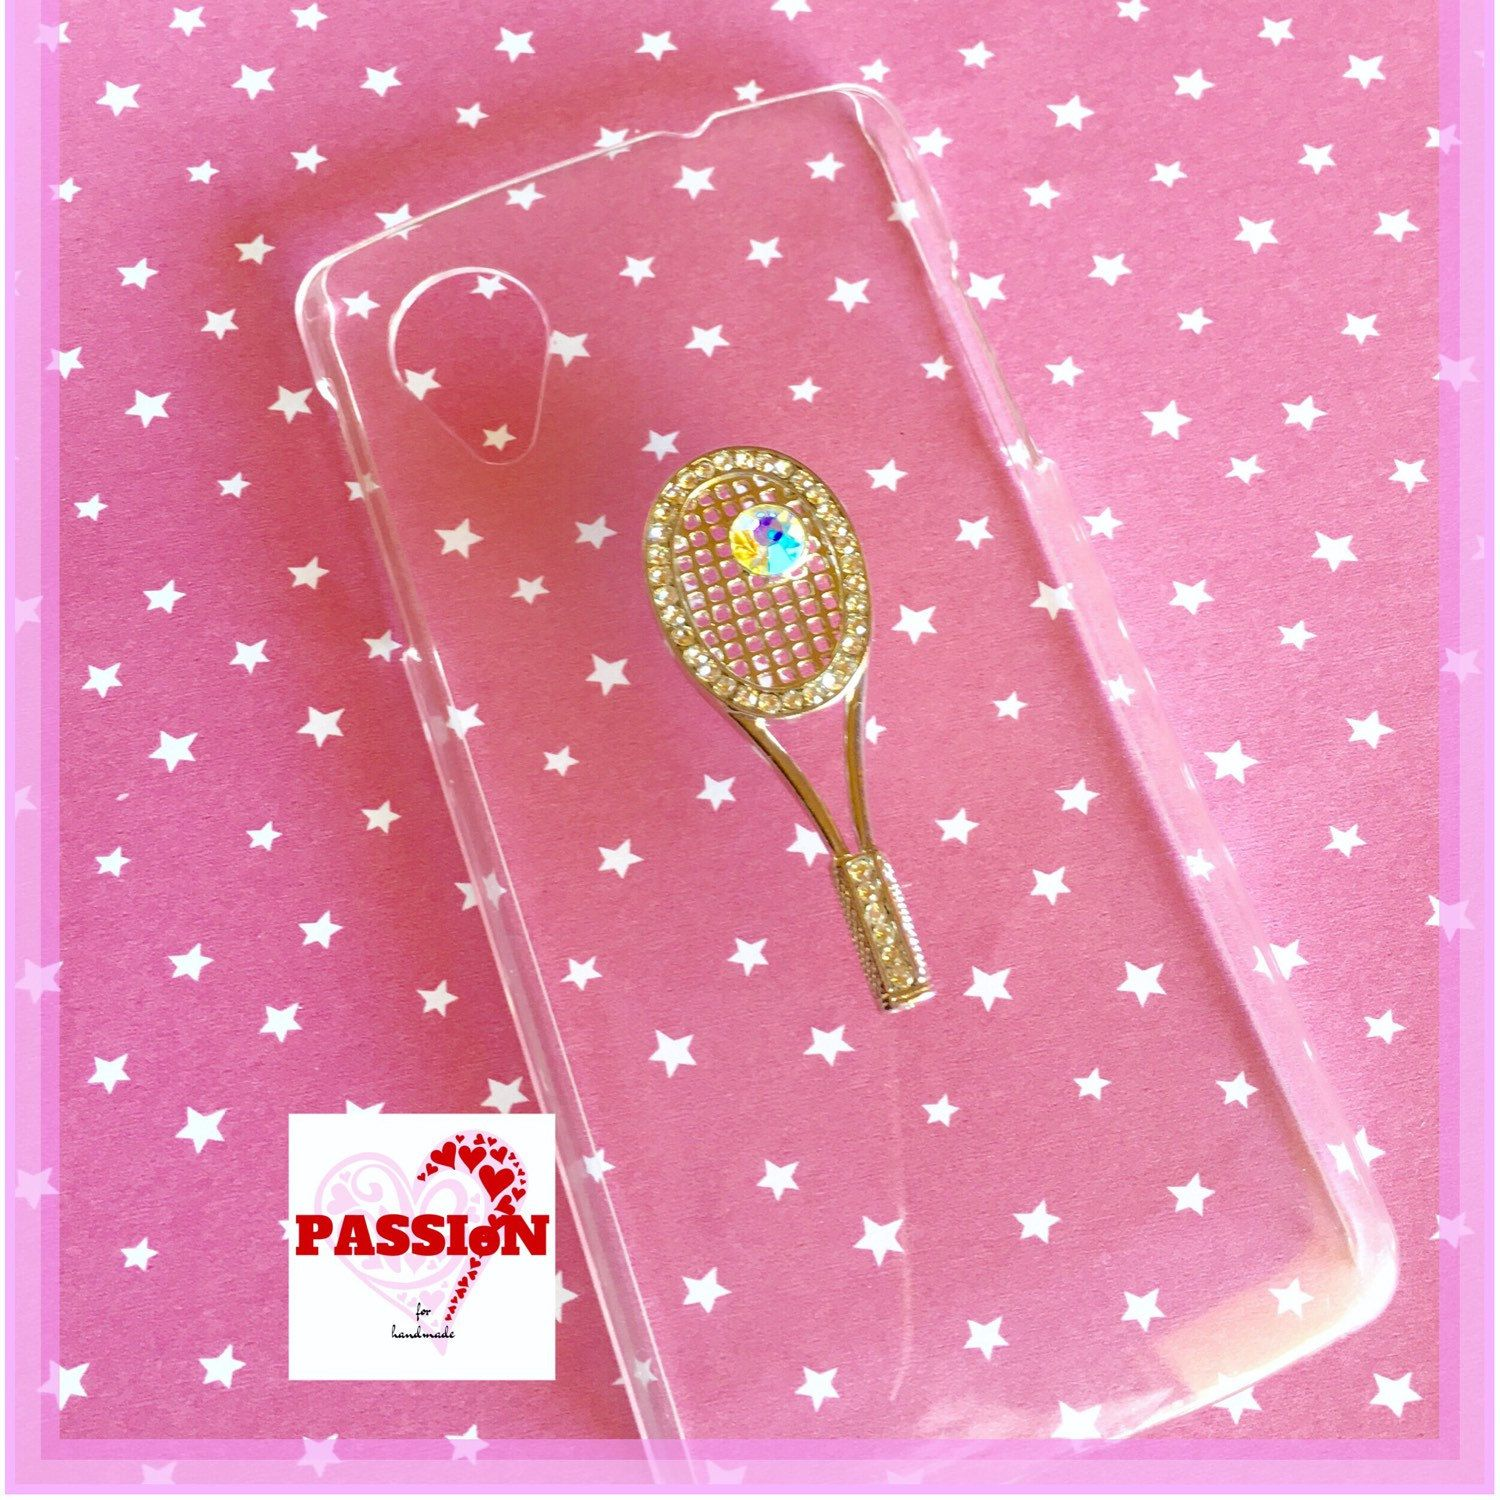 Are you a glamorous tennis player?. ✨  #phonecase #cover #tennisplayer #tennis #clearcase #cellphone #player